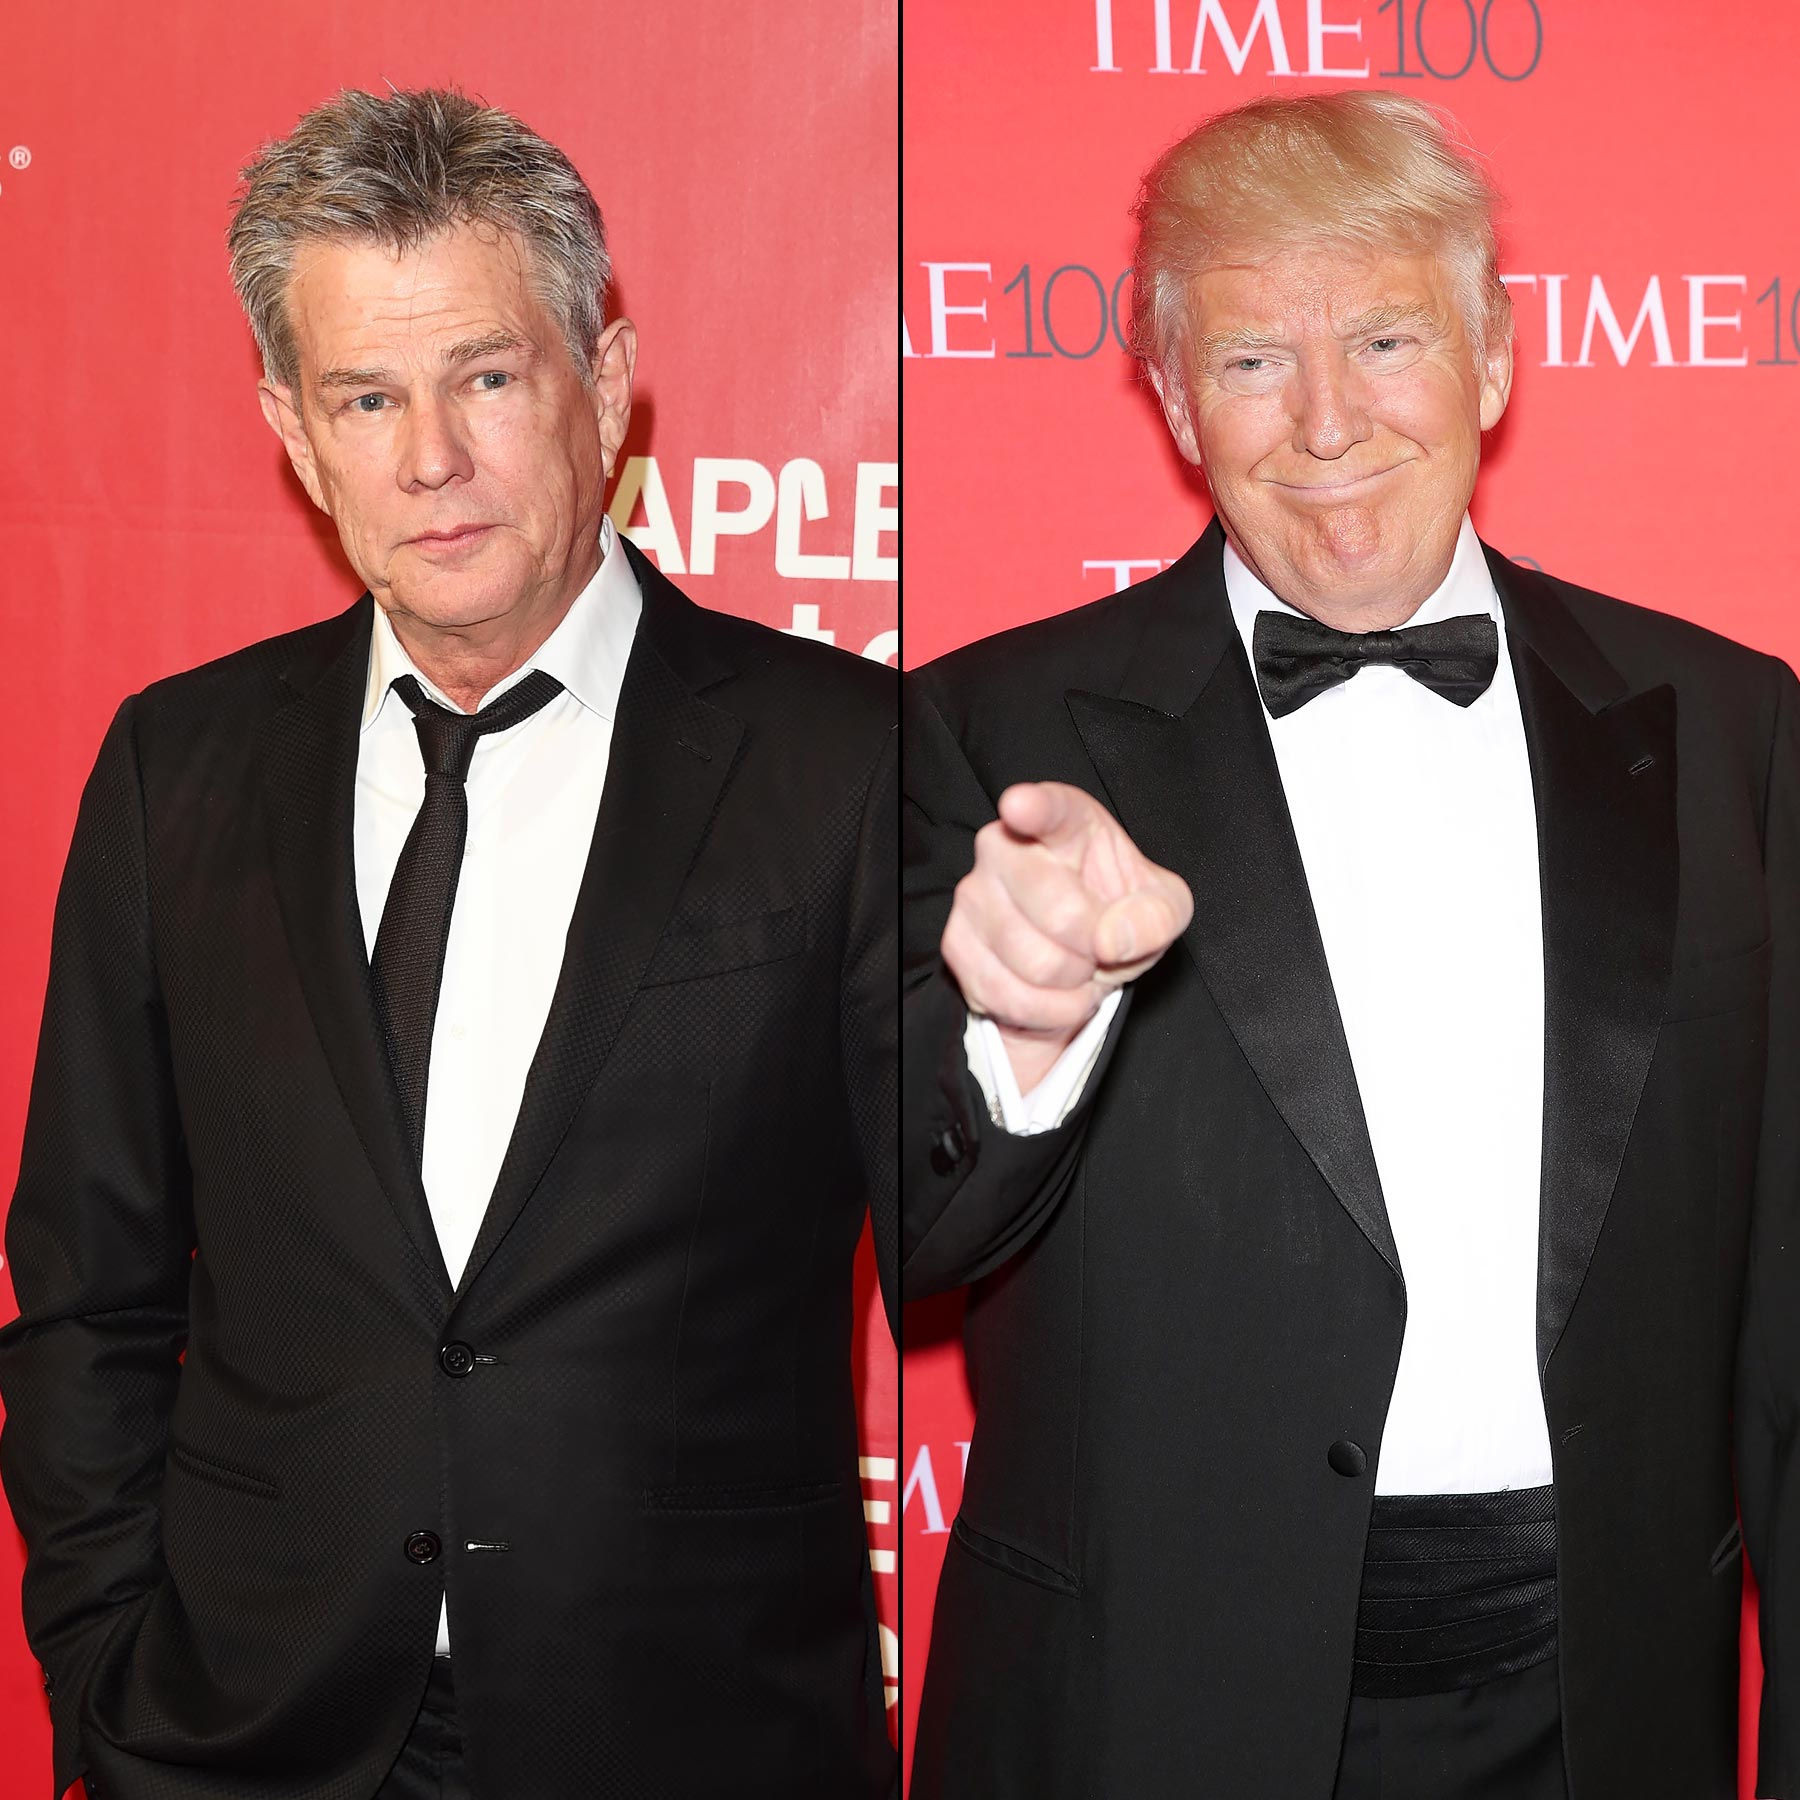 David Foster and Trump